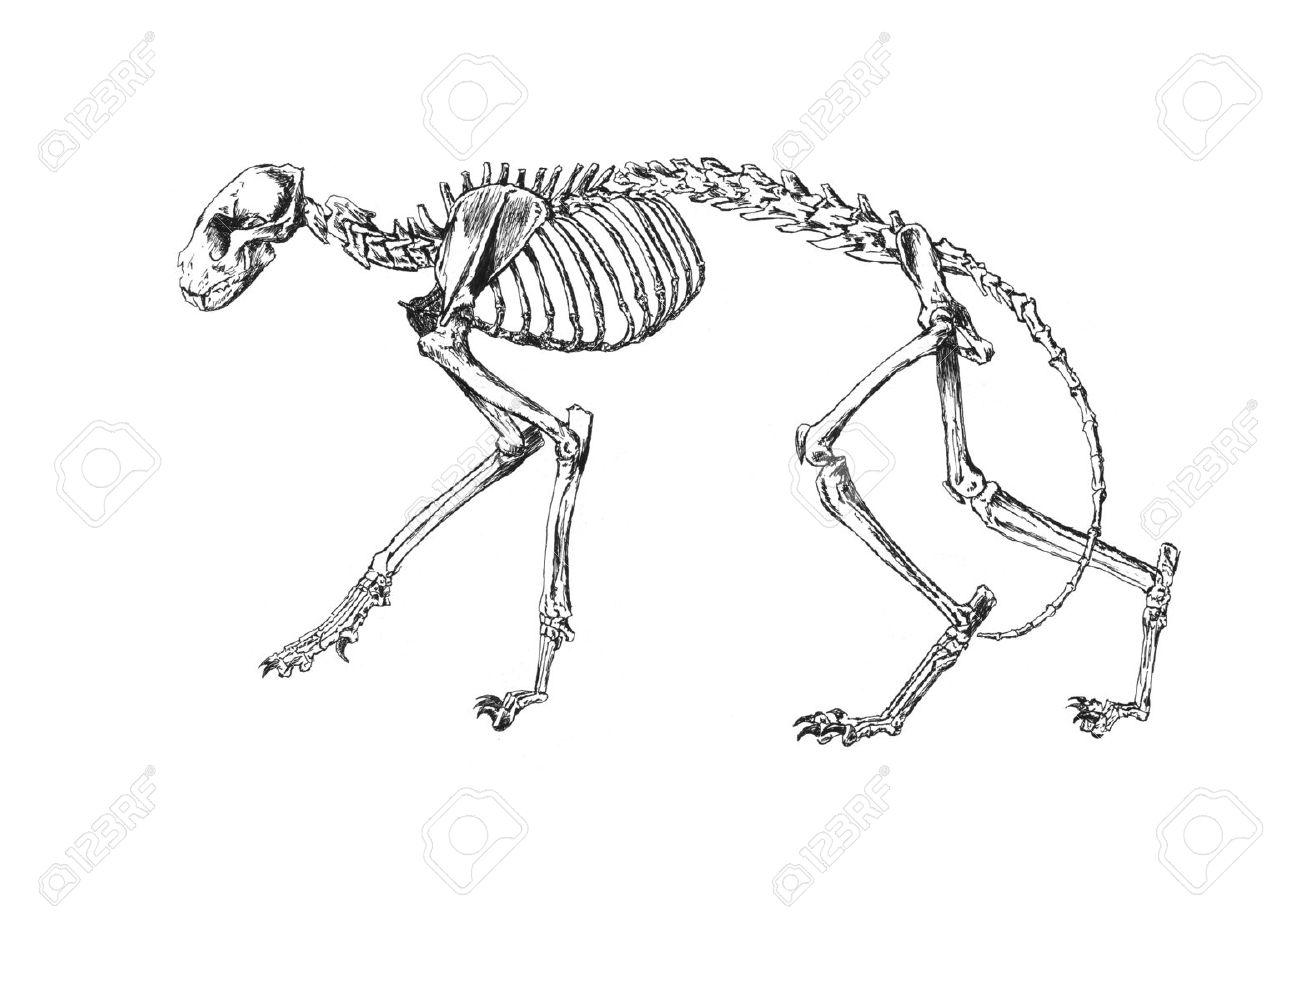 1300x1003 Drawing Of Cat Skeleton Stock Photo, Picture And Royalty Free